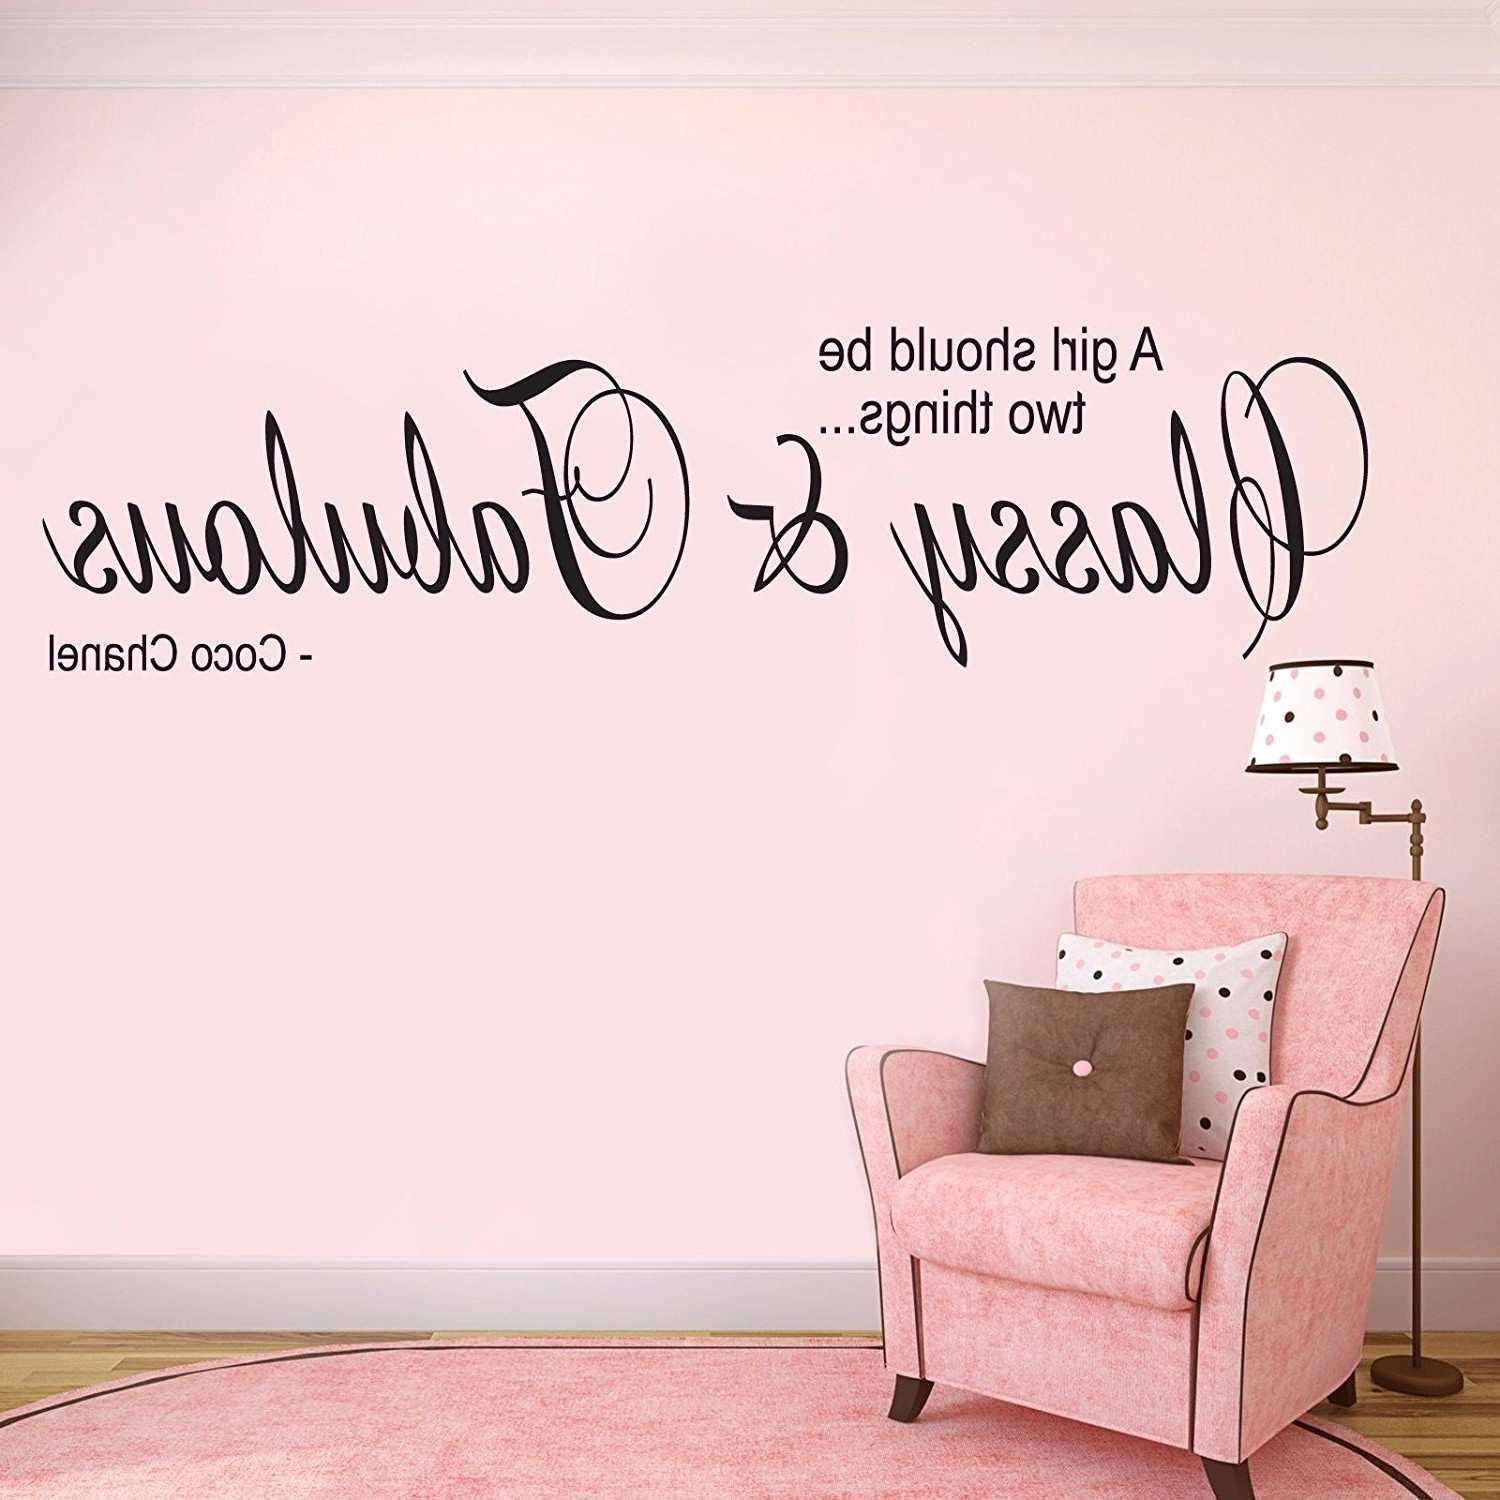 15 Collection of Coco Chanel Wall Decals